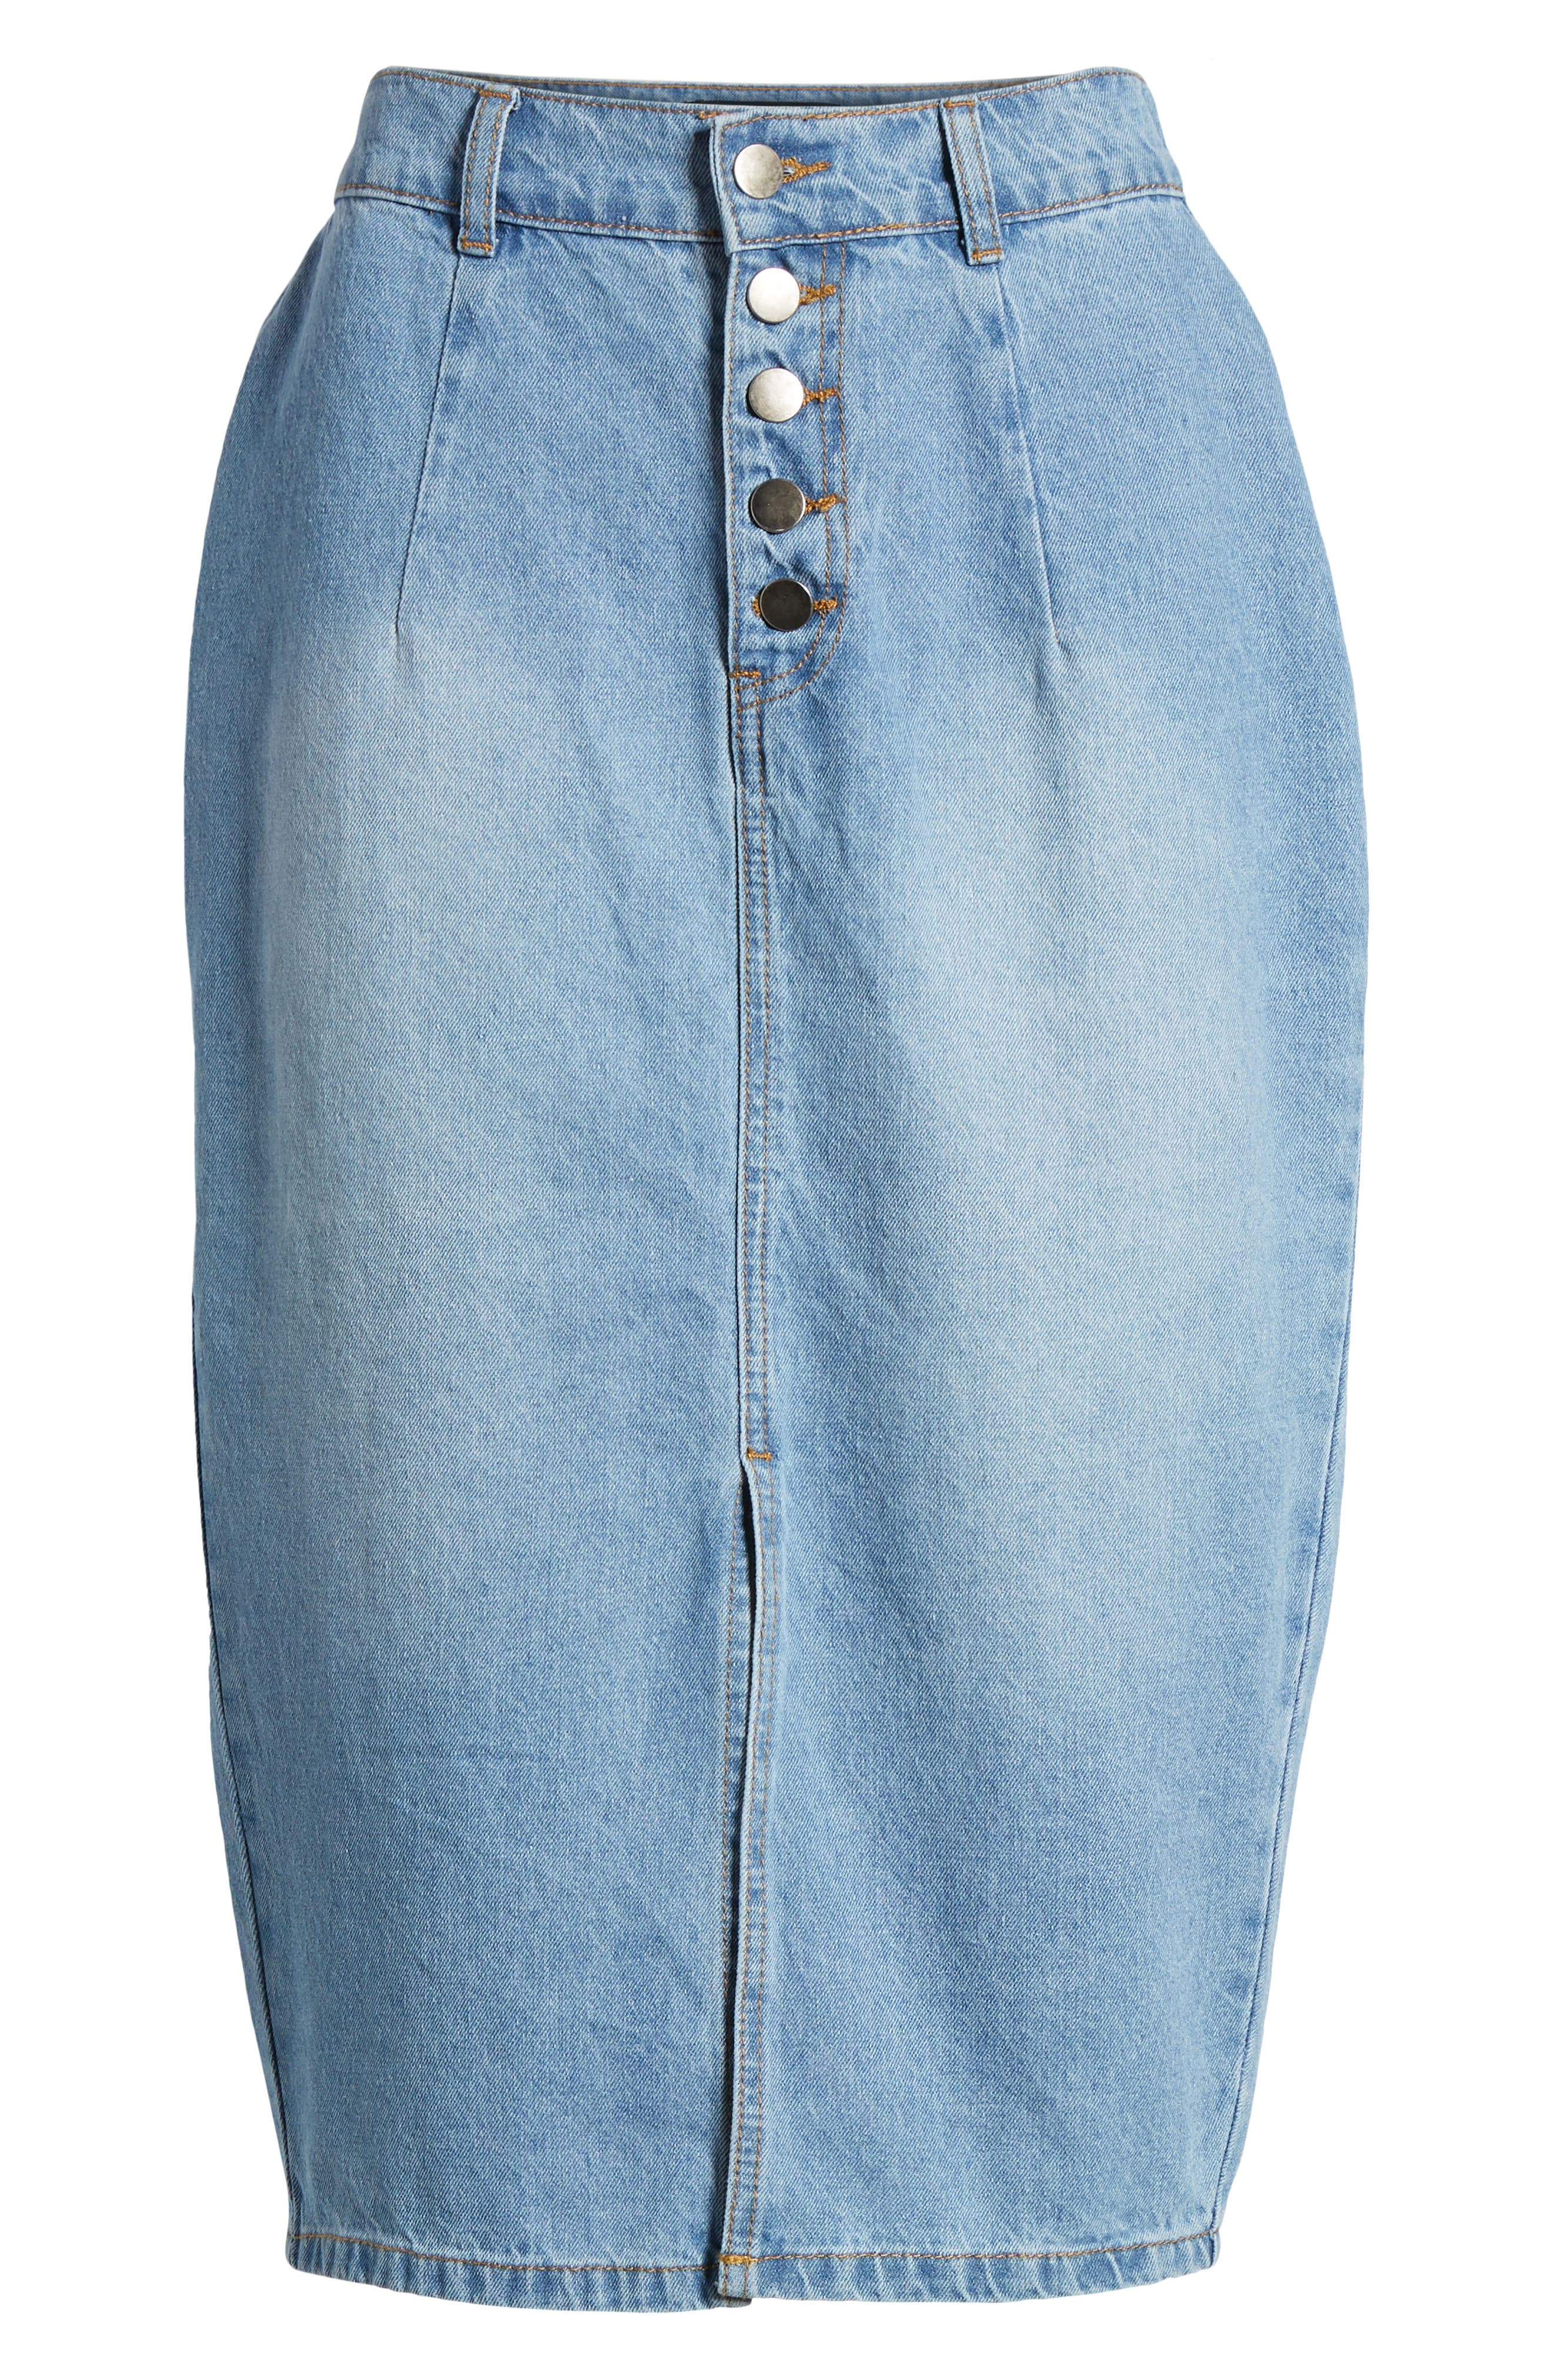 LOST INK,                             Essential Button Front Denim SKirt,                             Alternate thumbnail 7, color,                             400